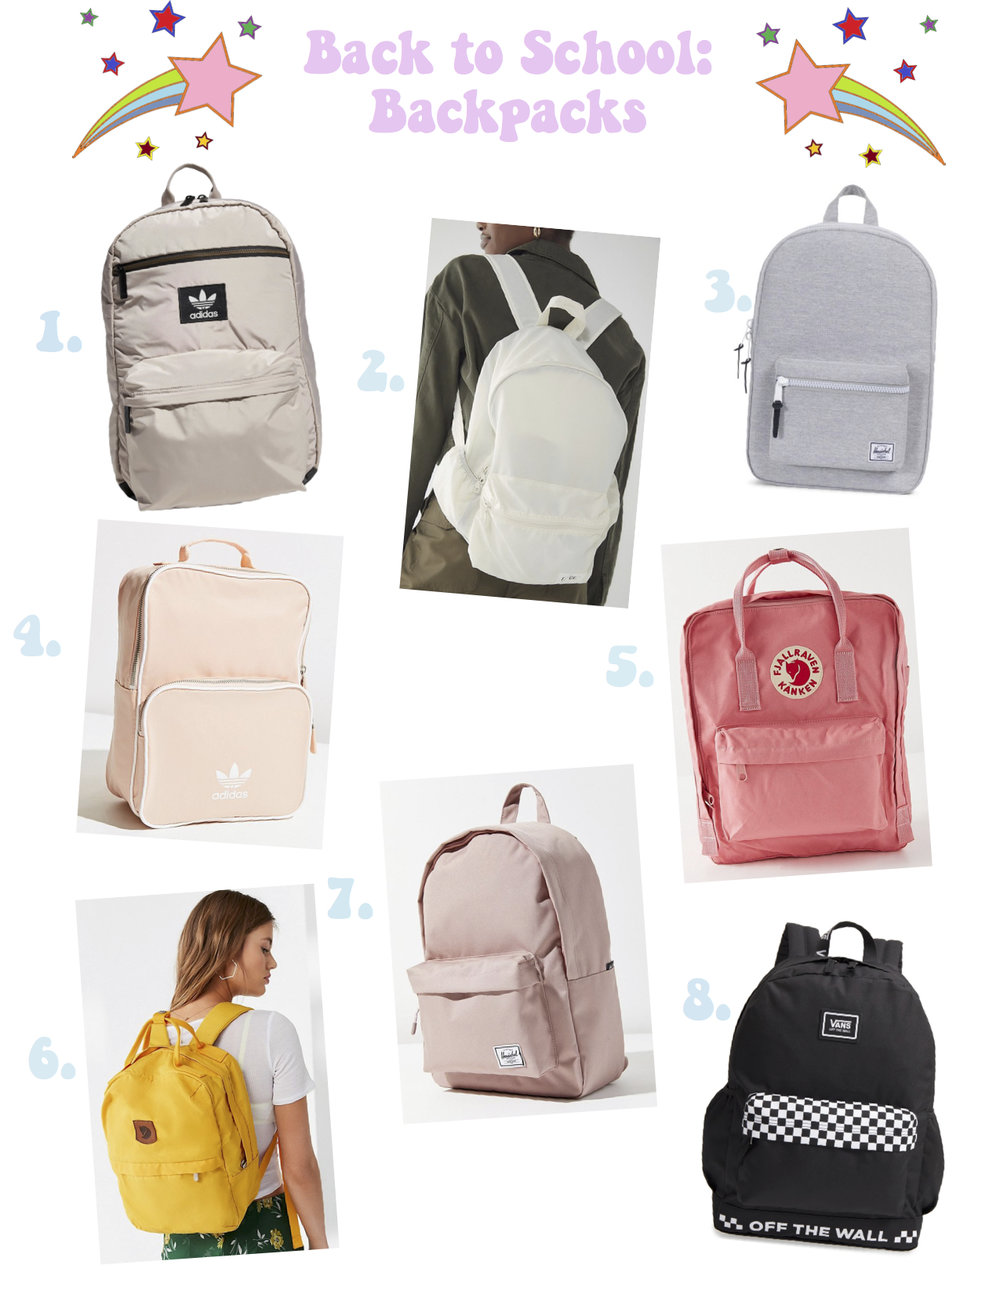 back to school- backpacks.jpg